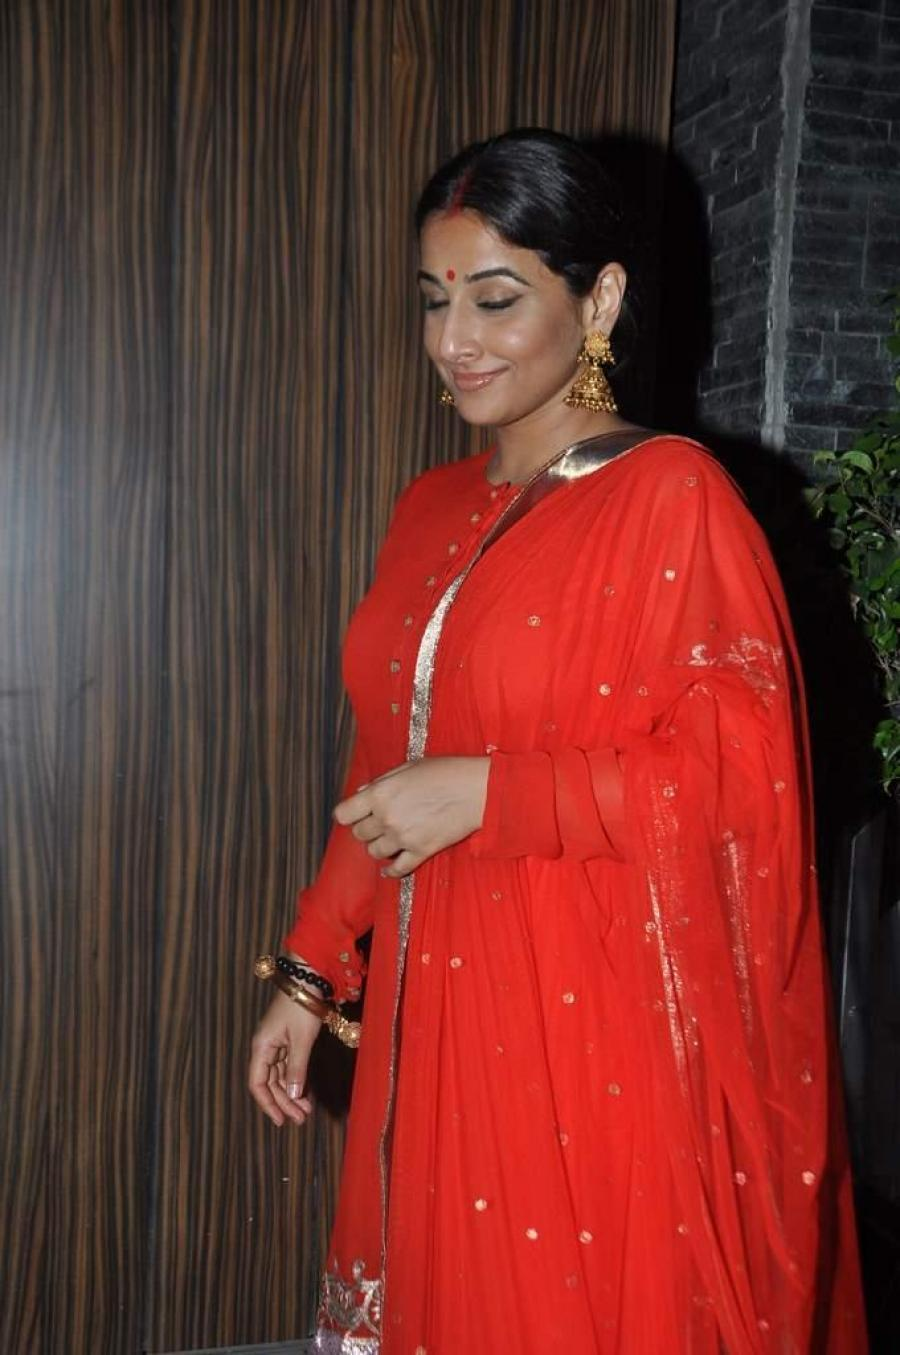 Vidya Balan Hot Sleeping Photos In Red Dress